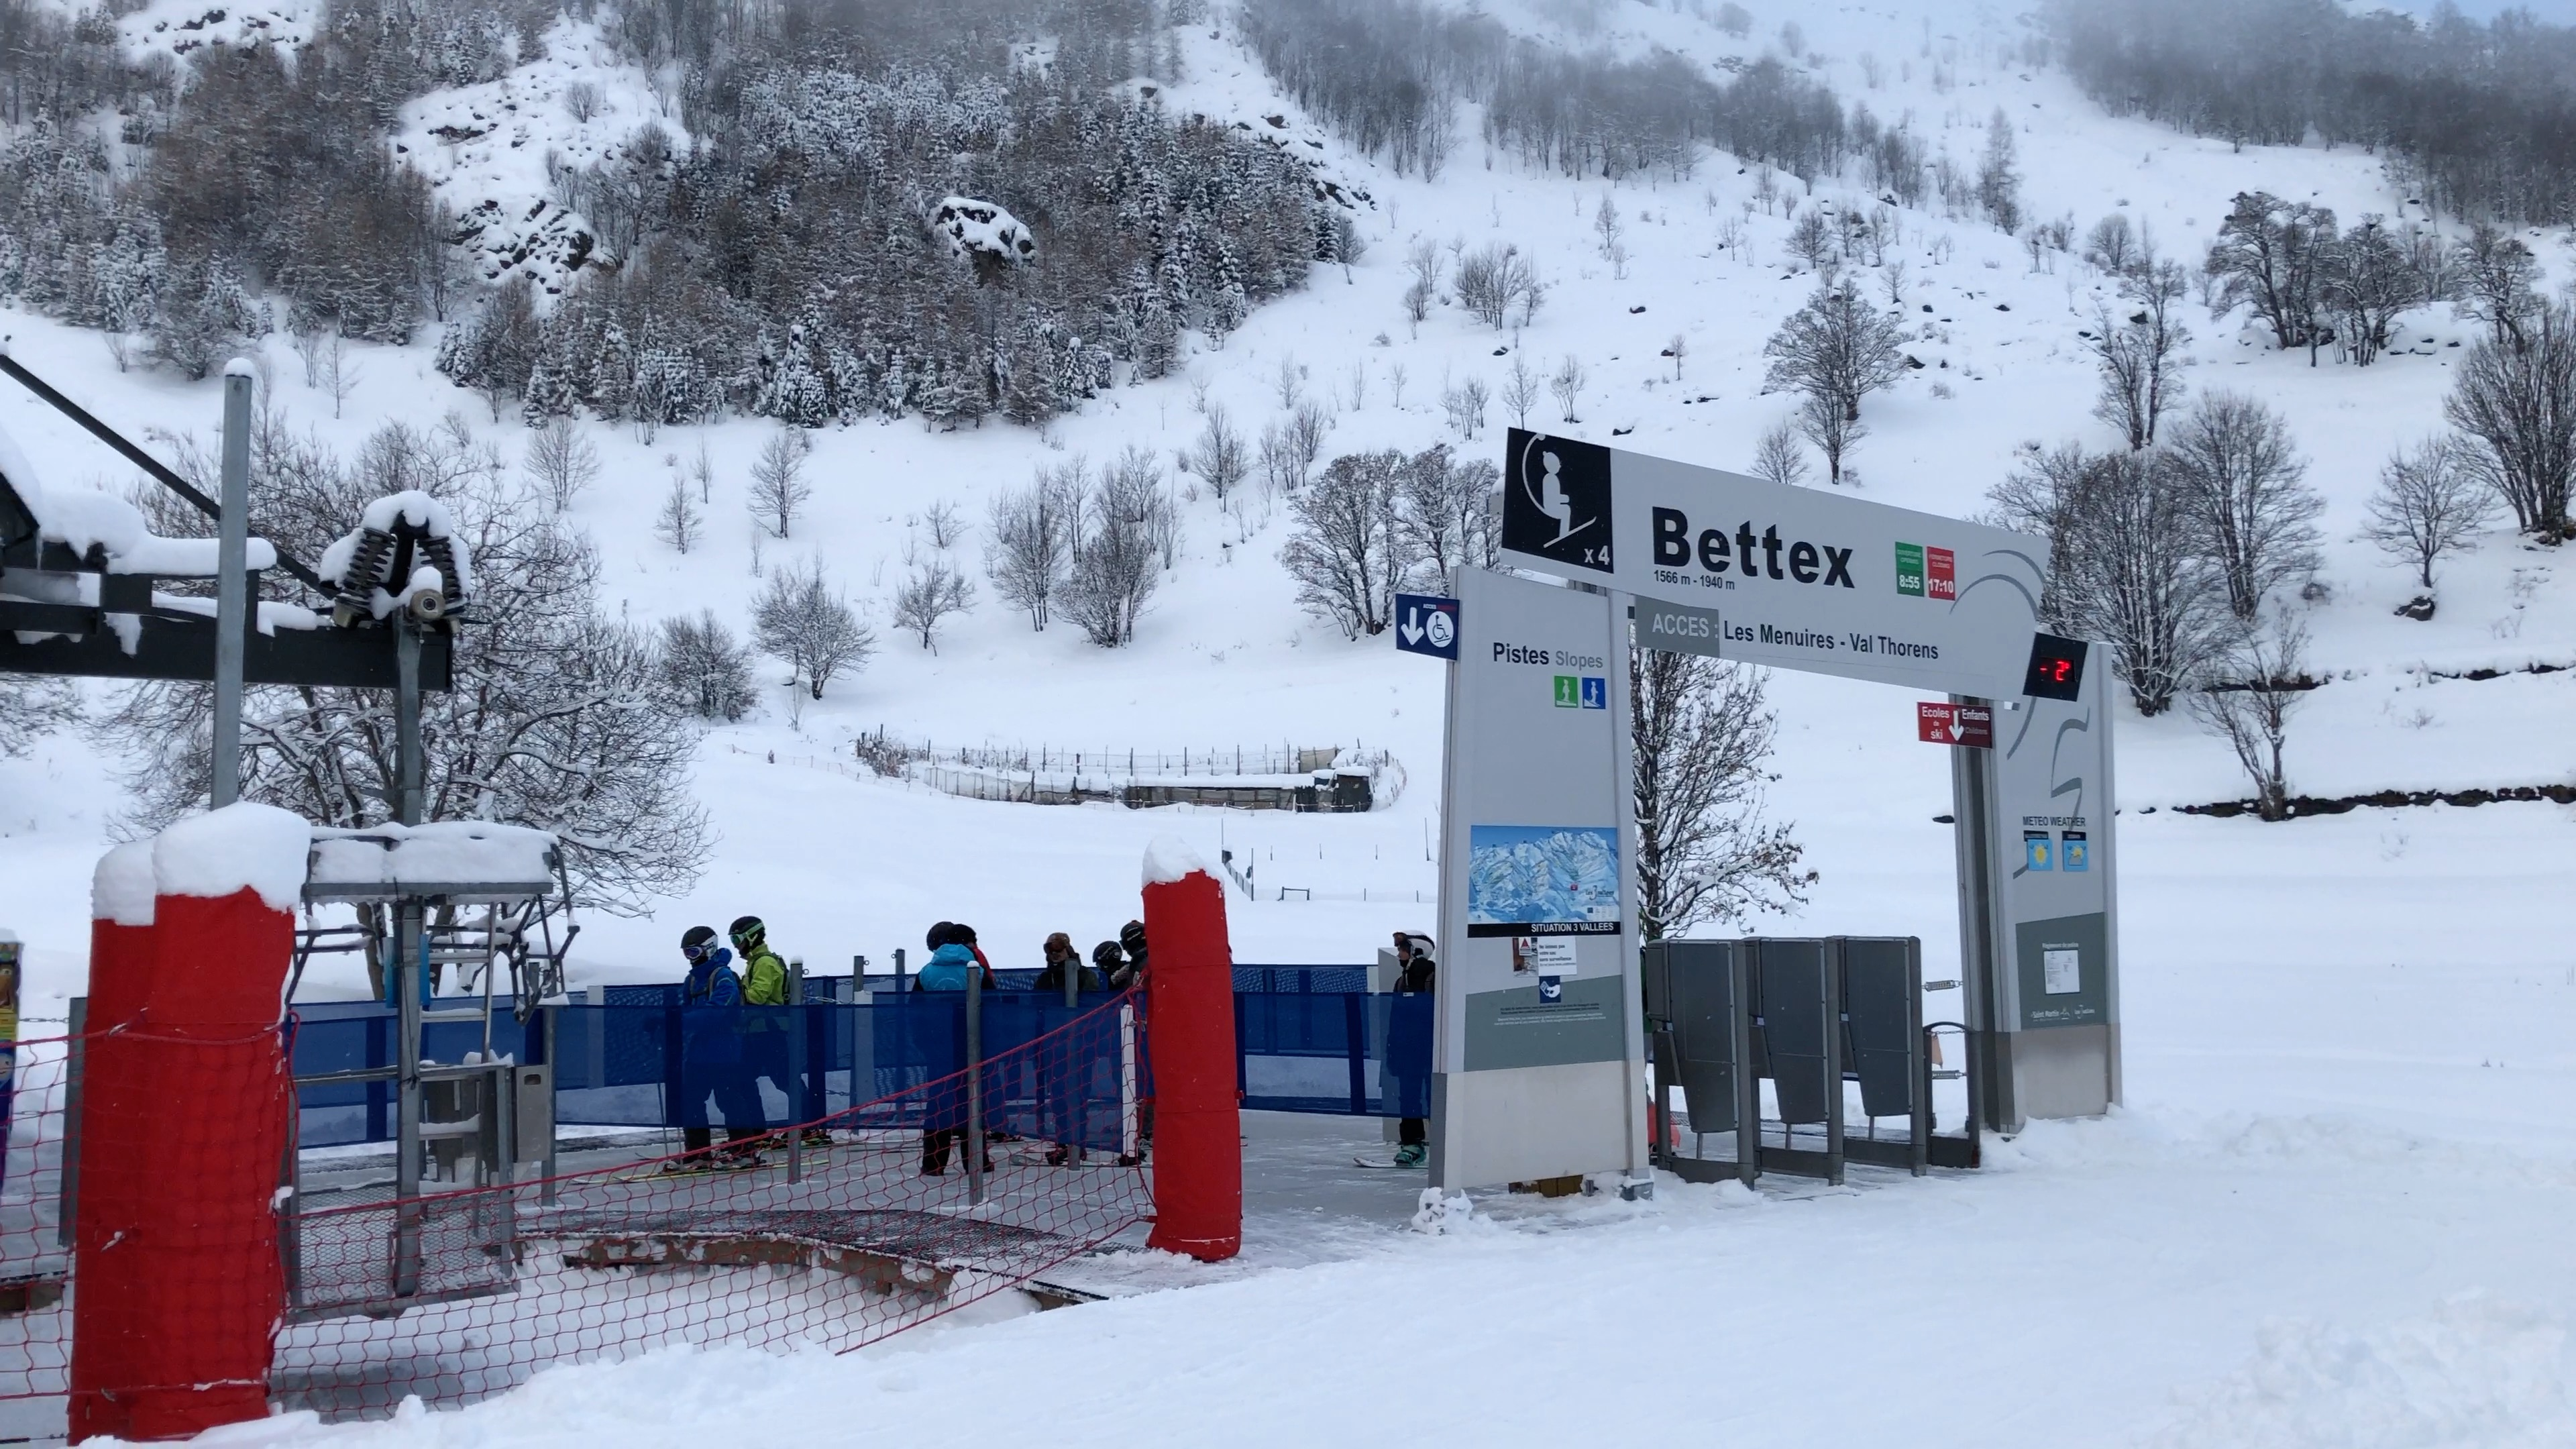 Le Bettex Ski Lift